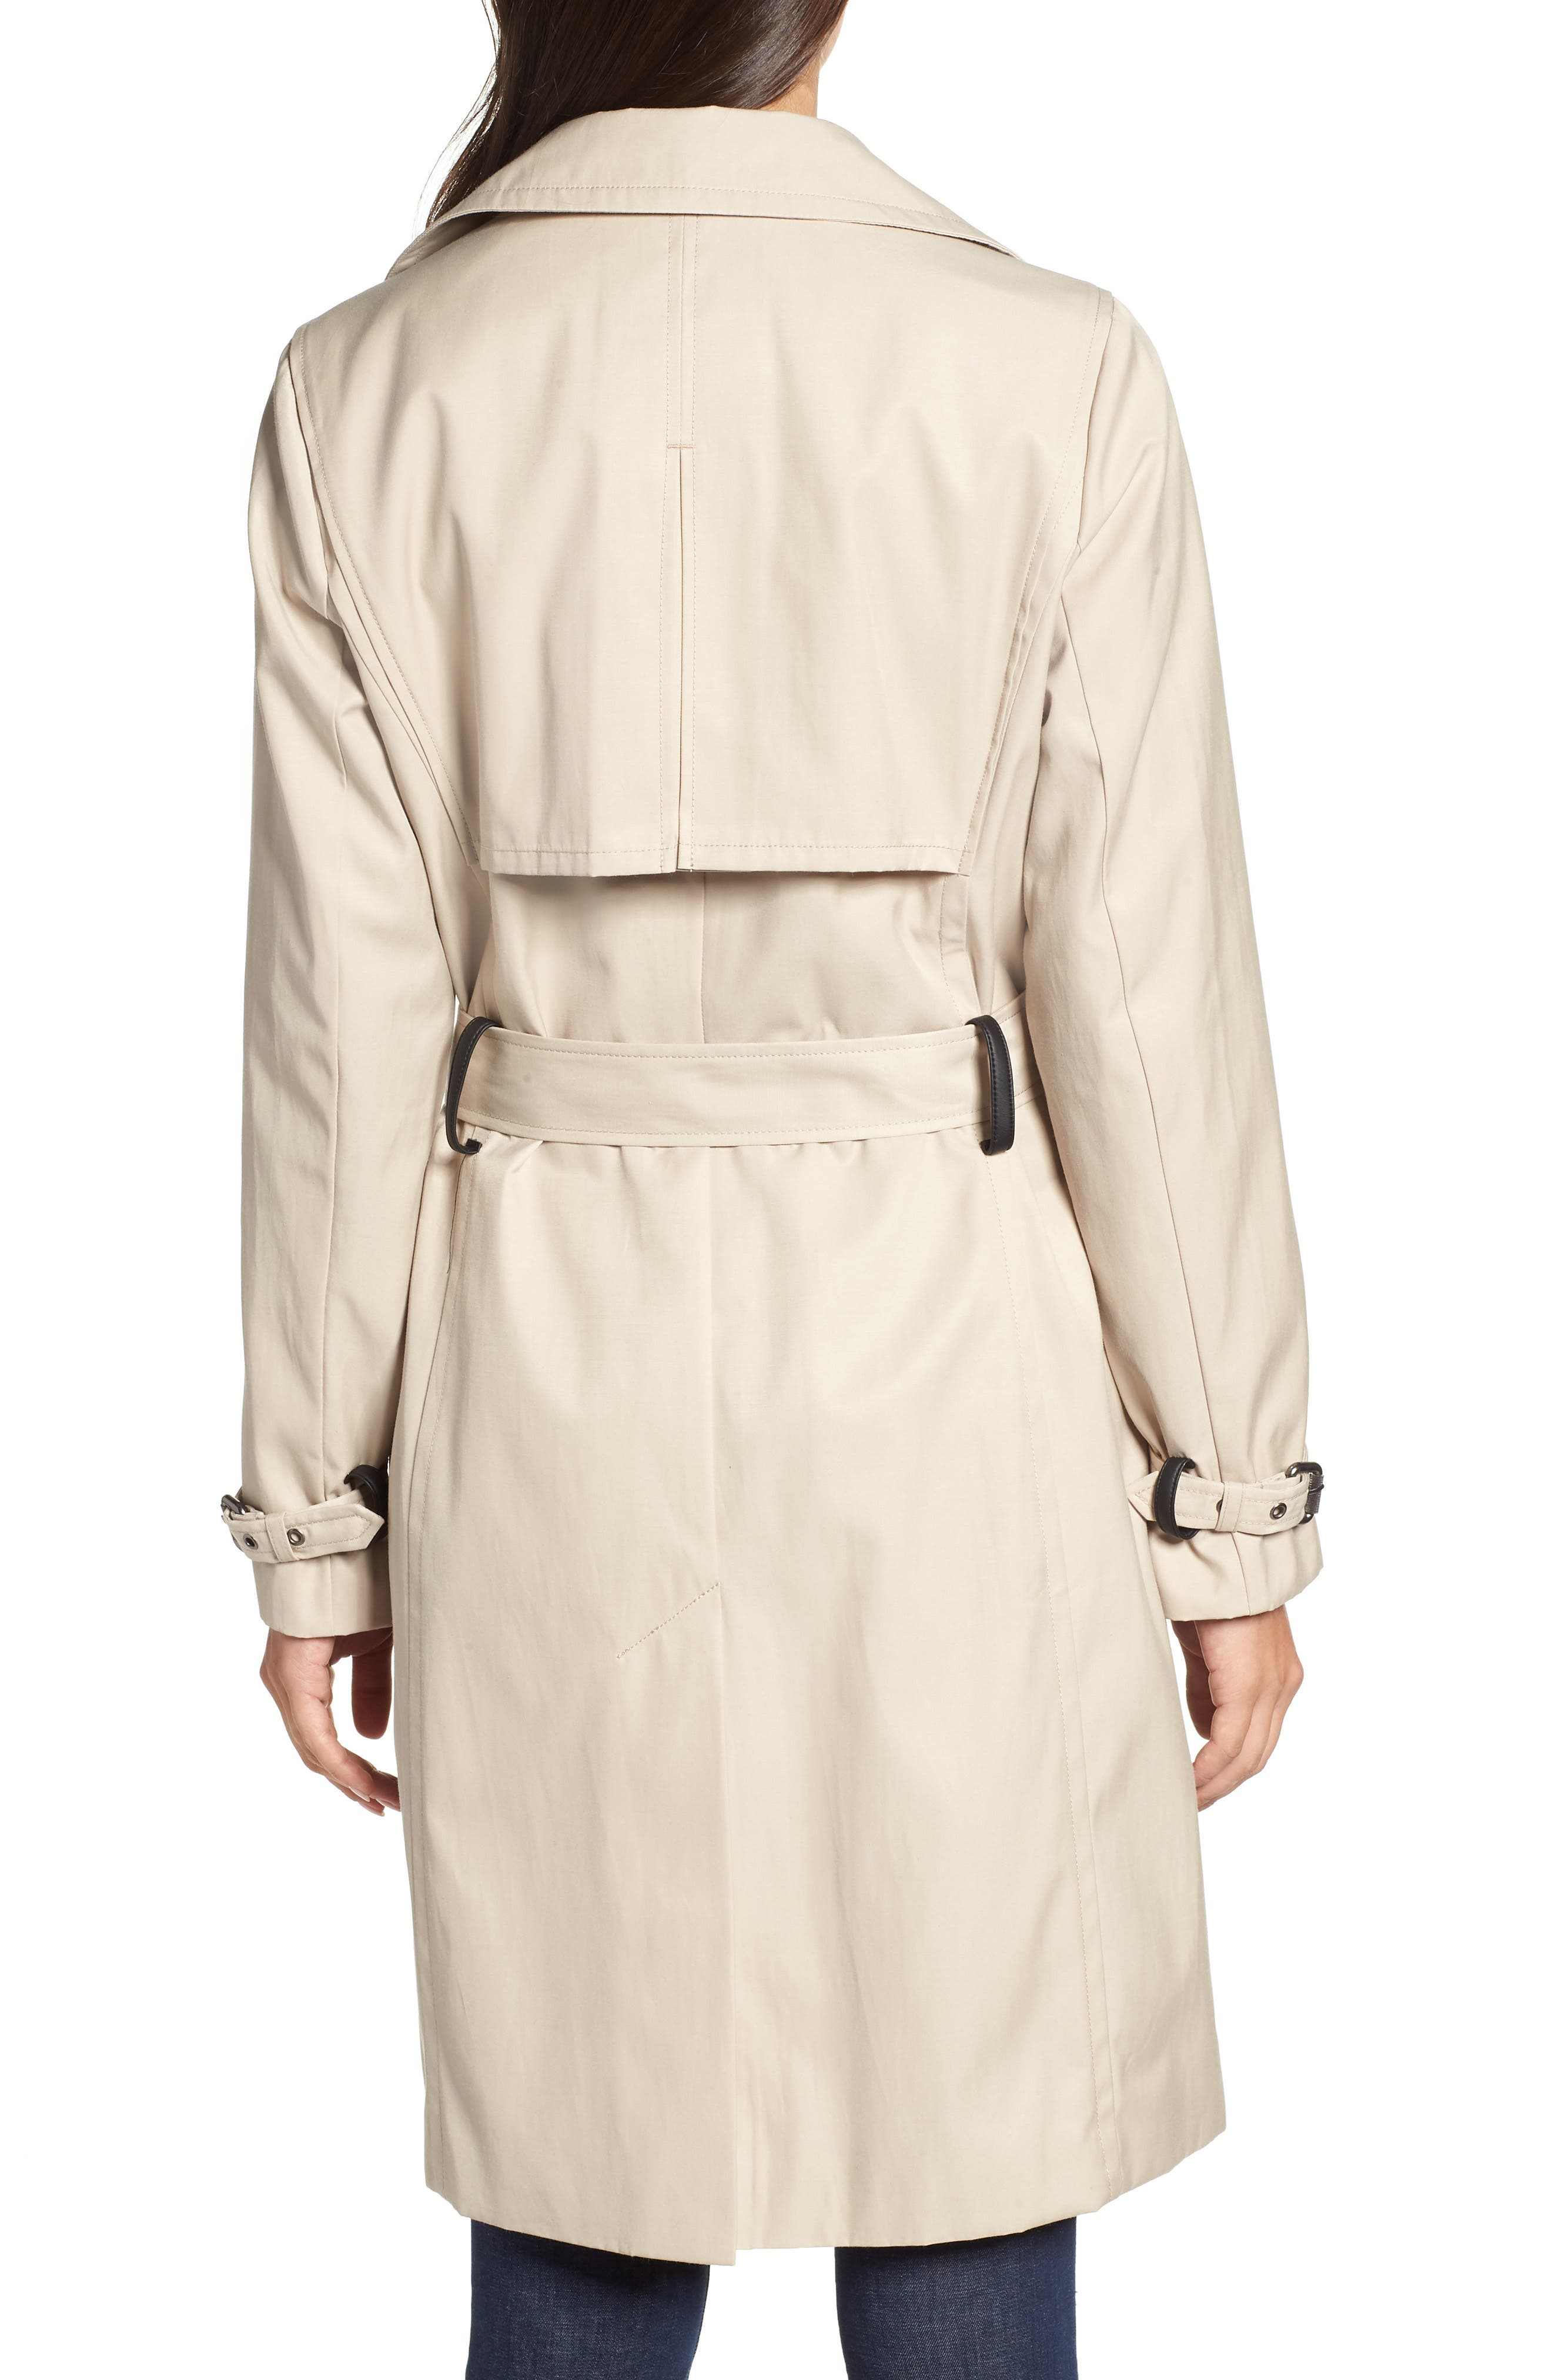 Packable Trench Coat,                             Alternate thumbnail 2, color,                             252